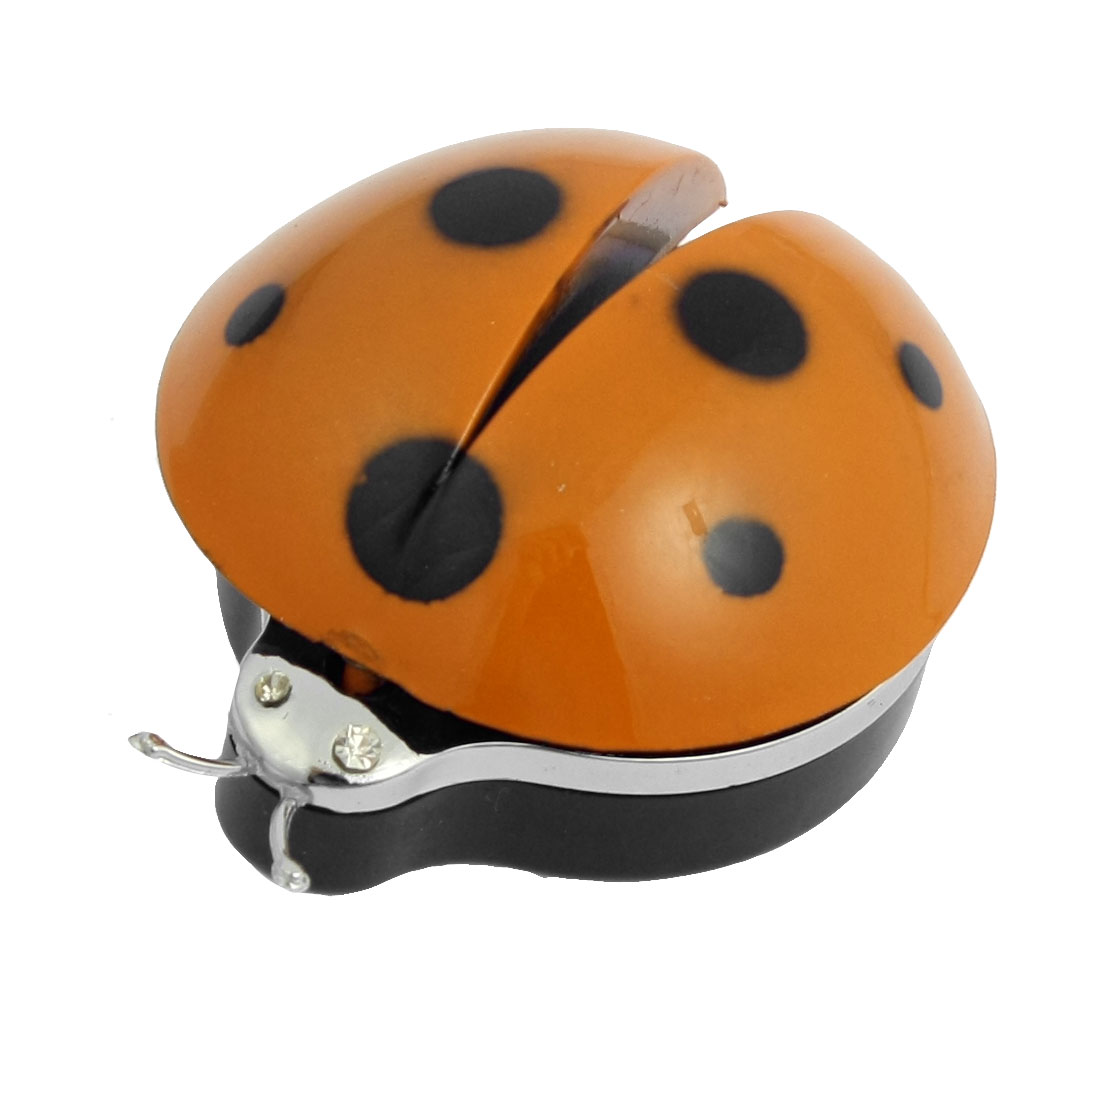 Car Vent Plastic Diffuser Ladybug Air Fresheners Orange w Clip